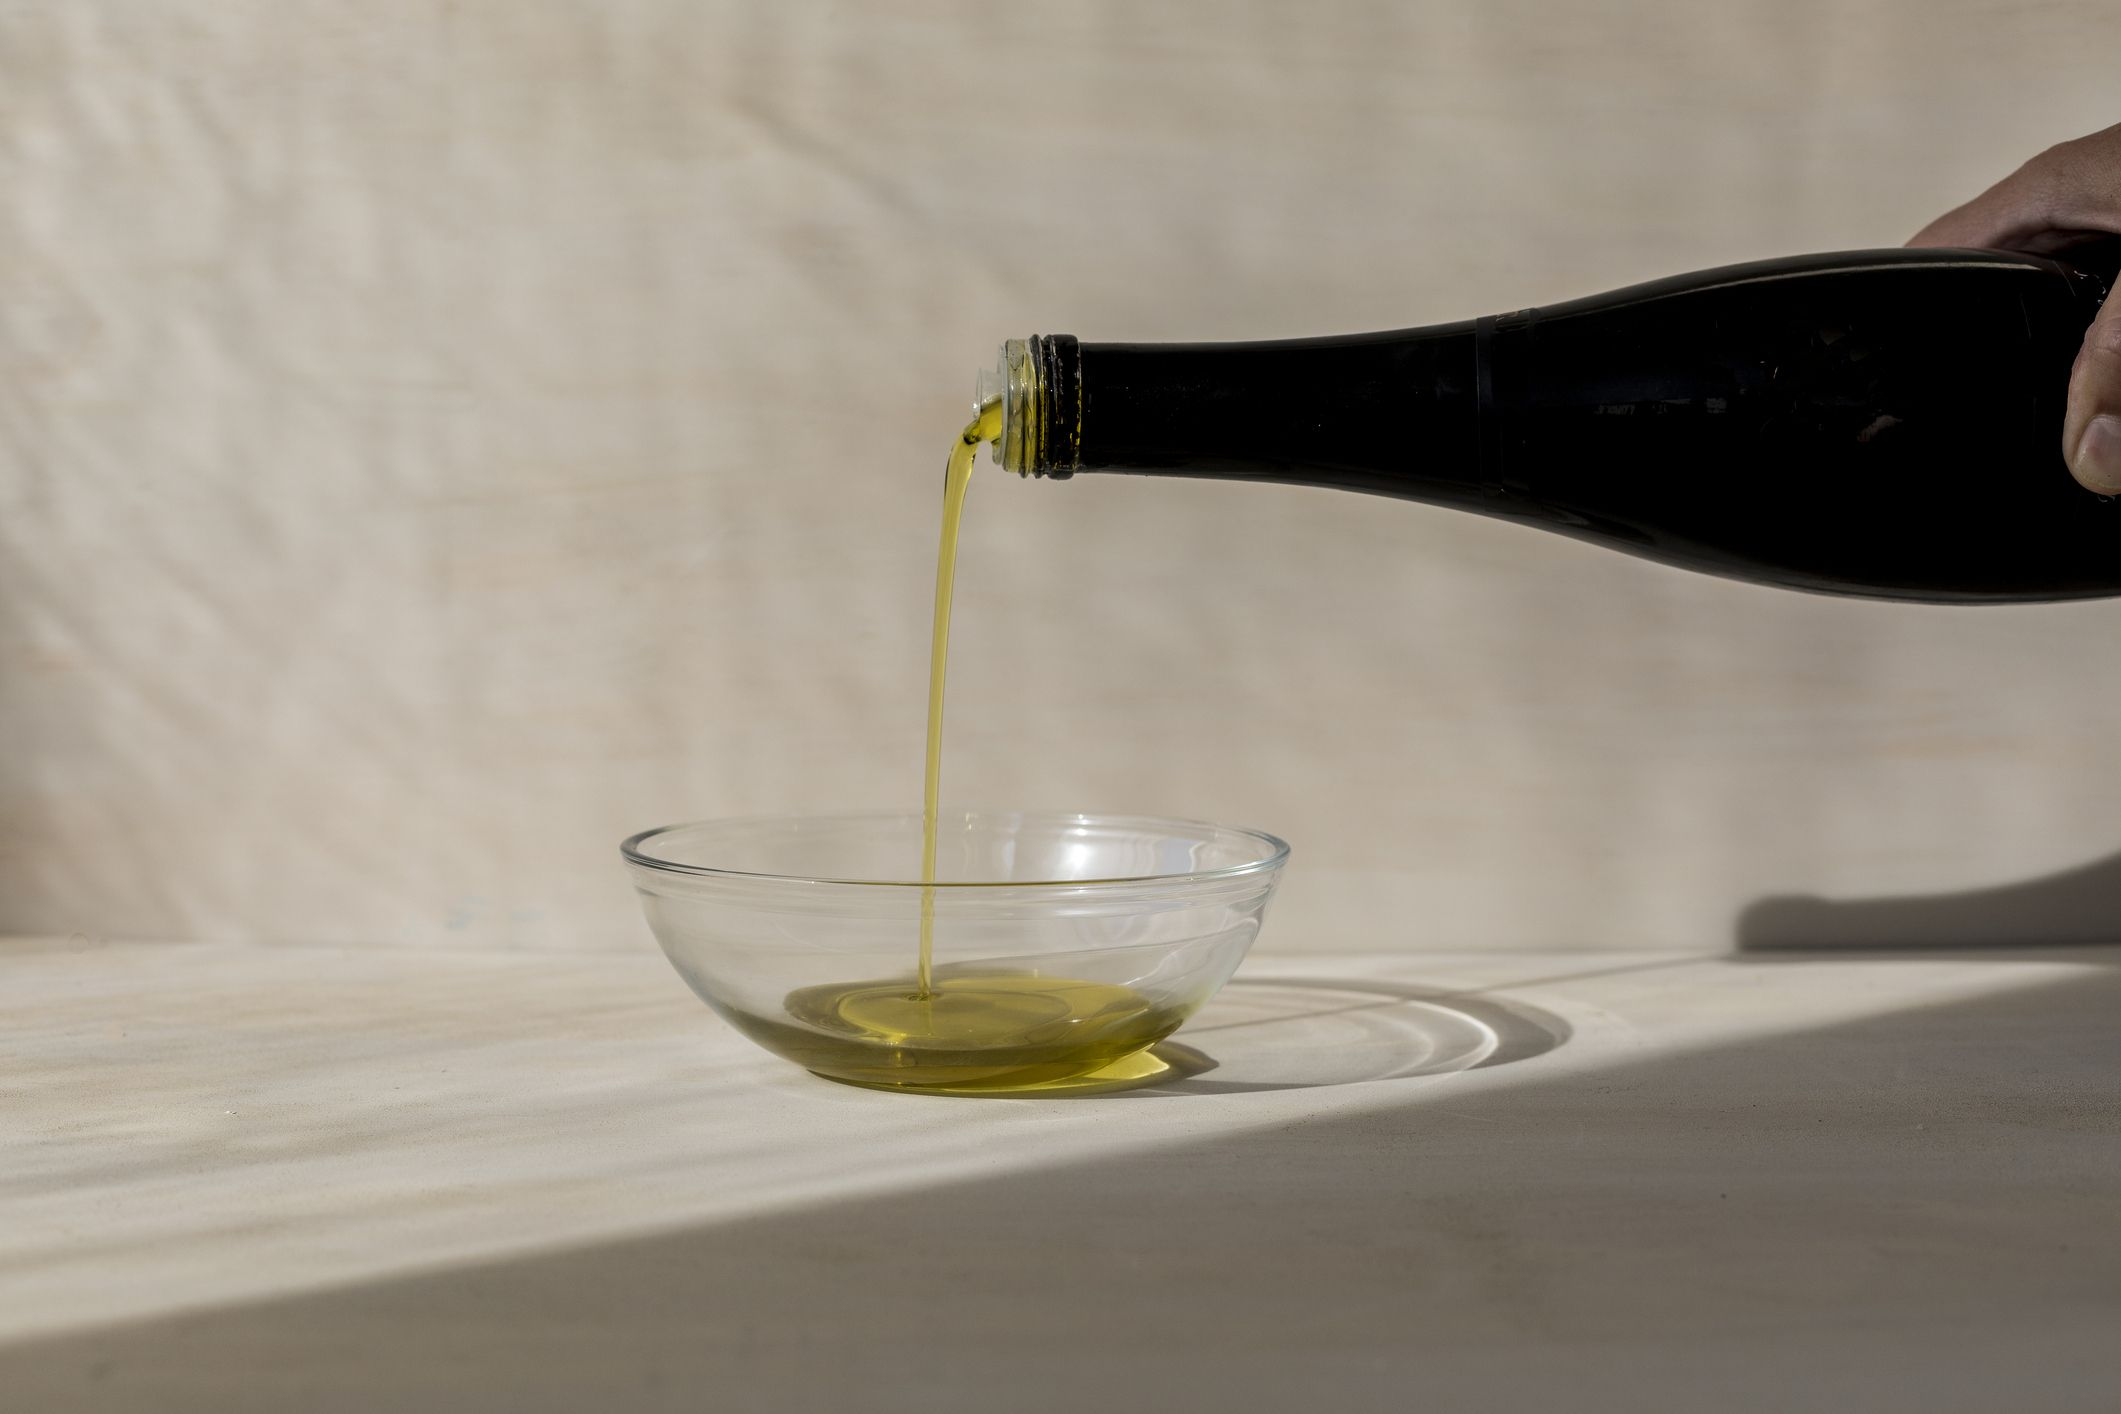 Is Olive Oil Healthy—And If So, What Are the Benefits?